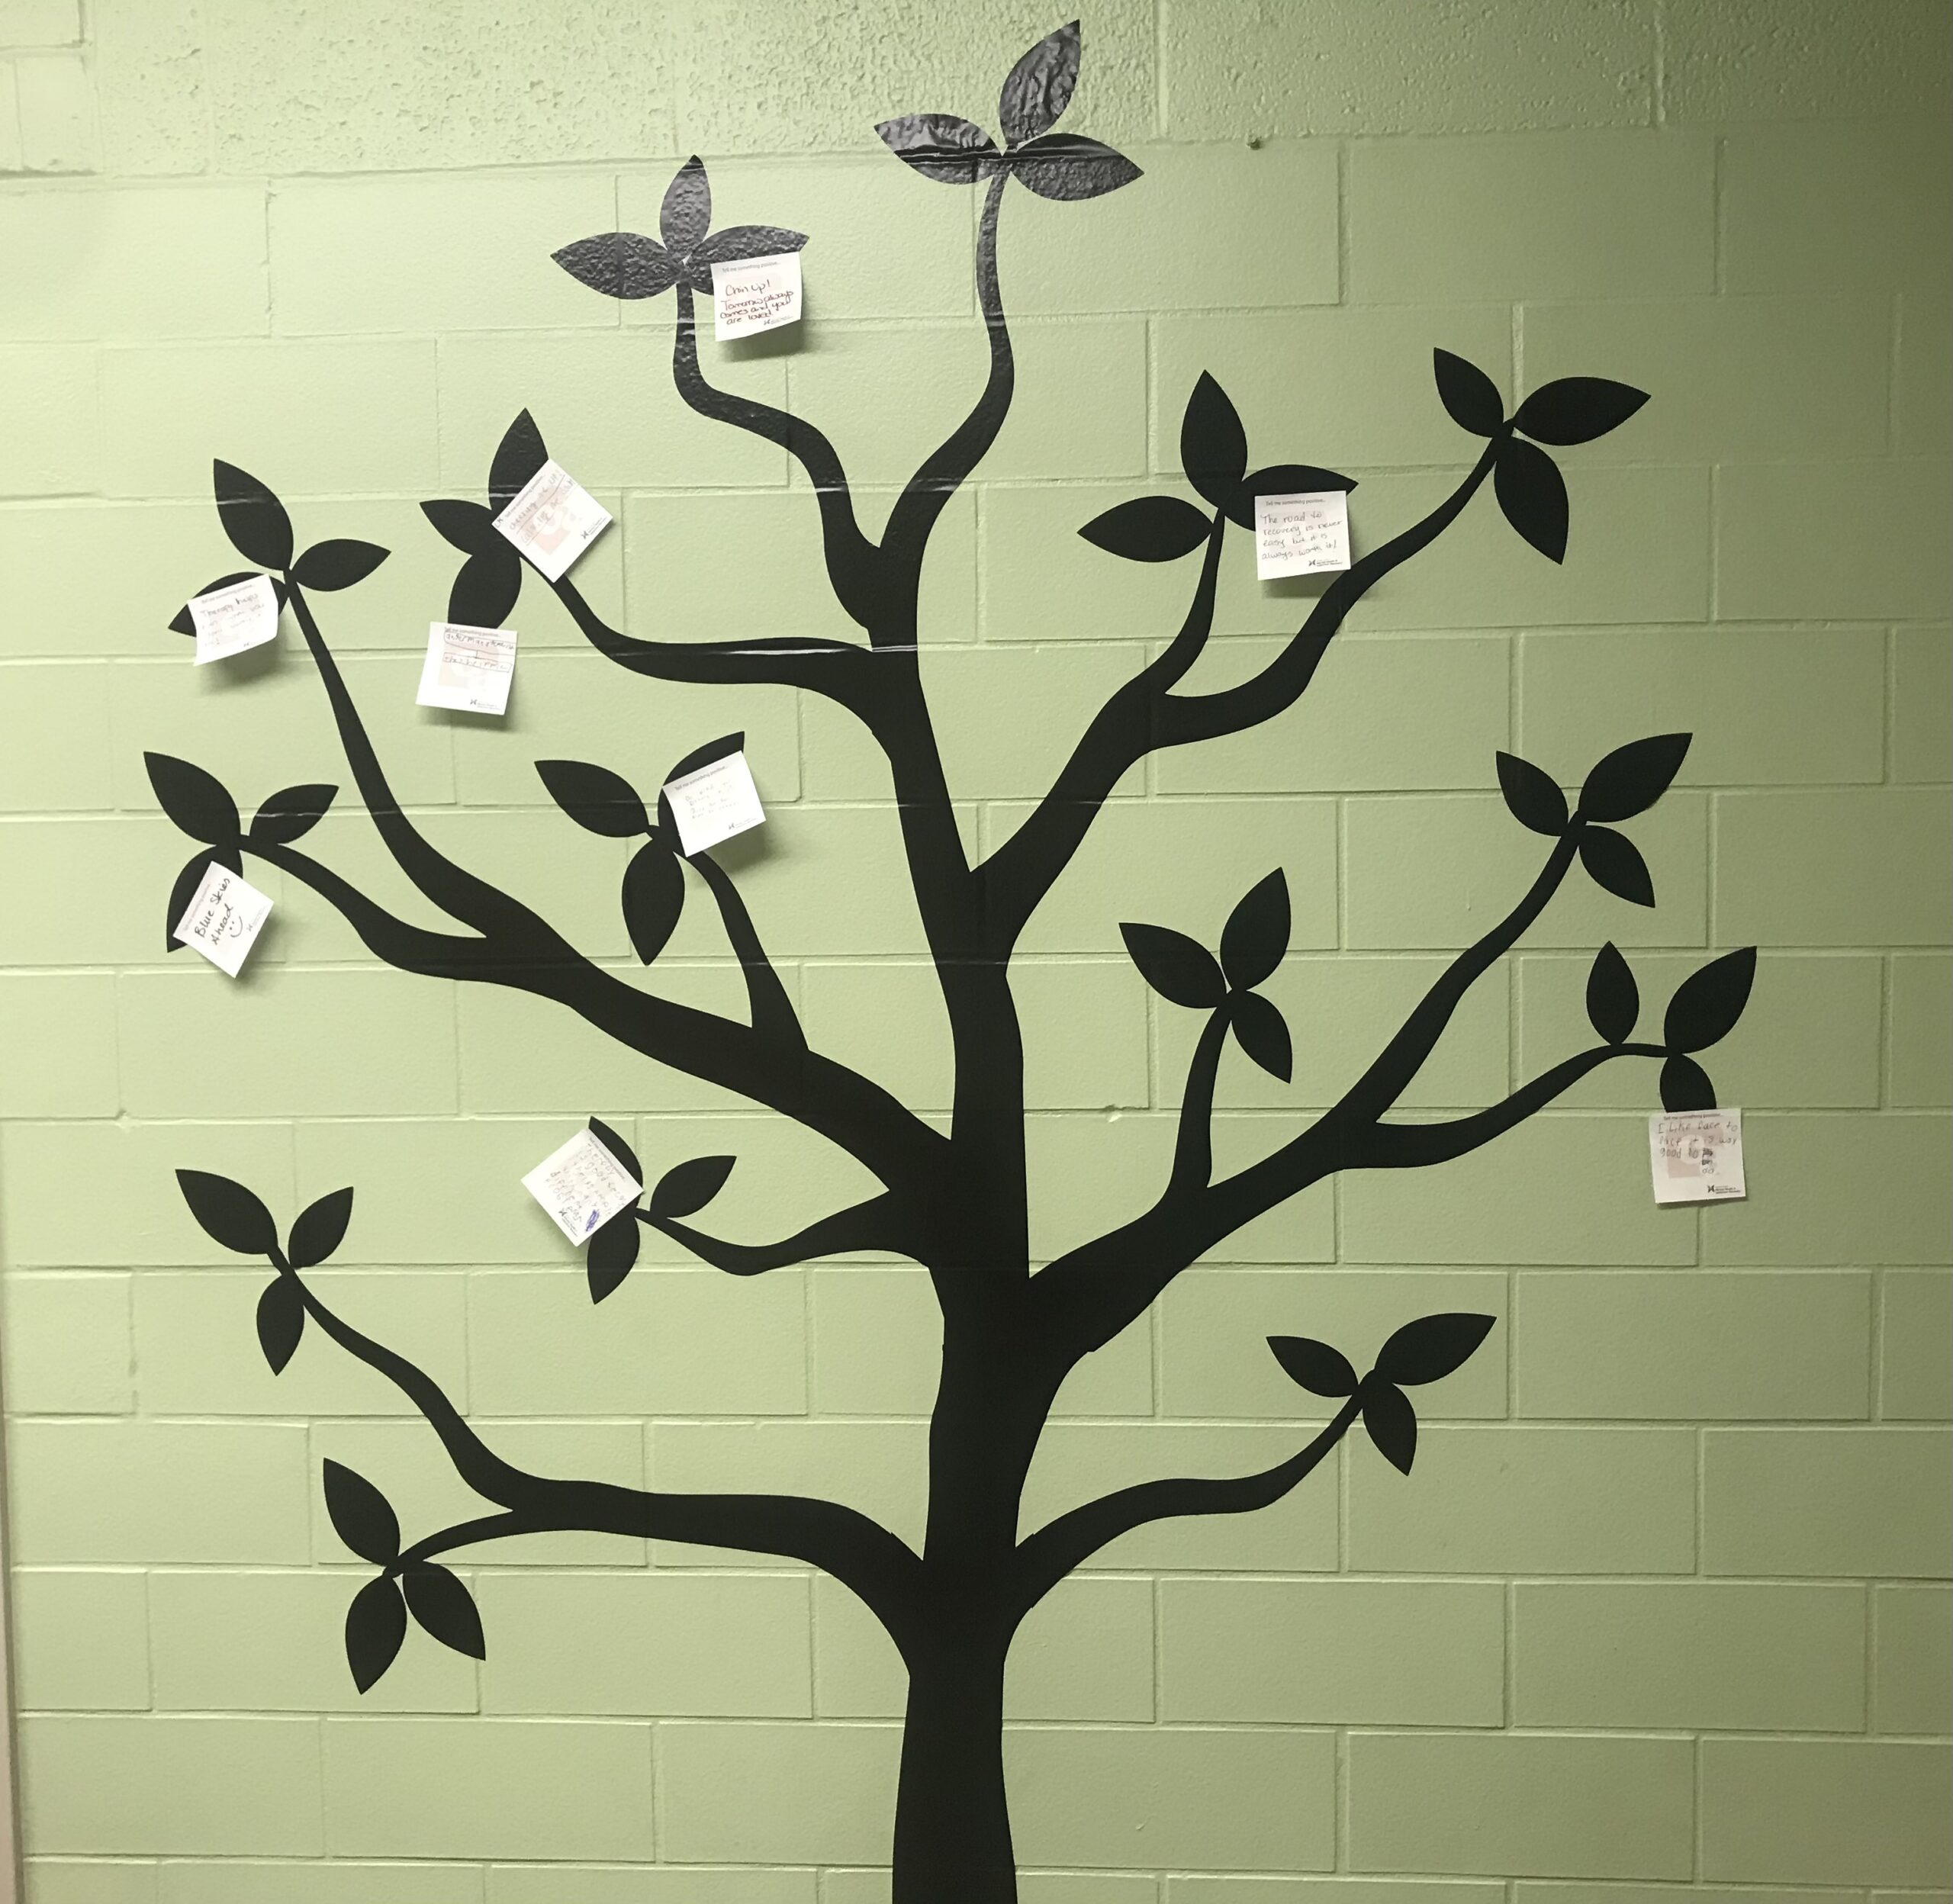 Shipley Client Appreciation Tree (002)